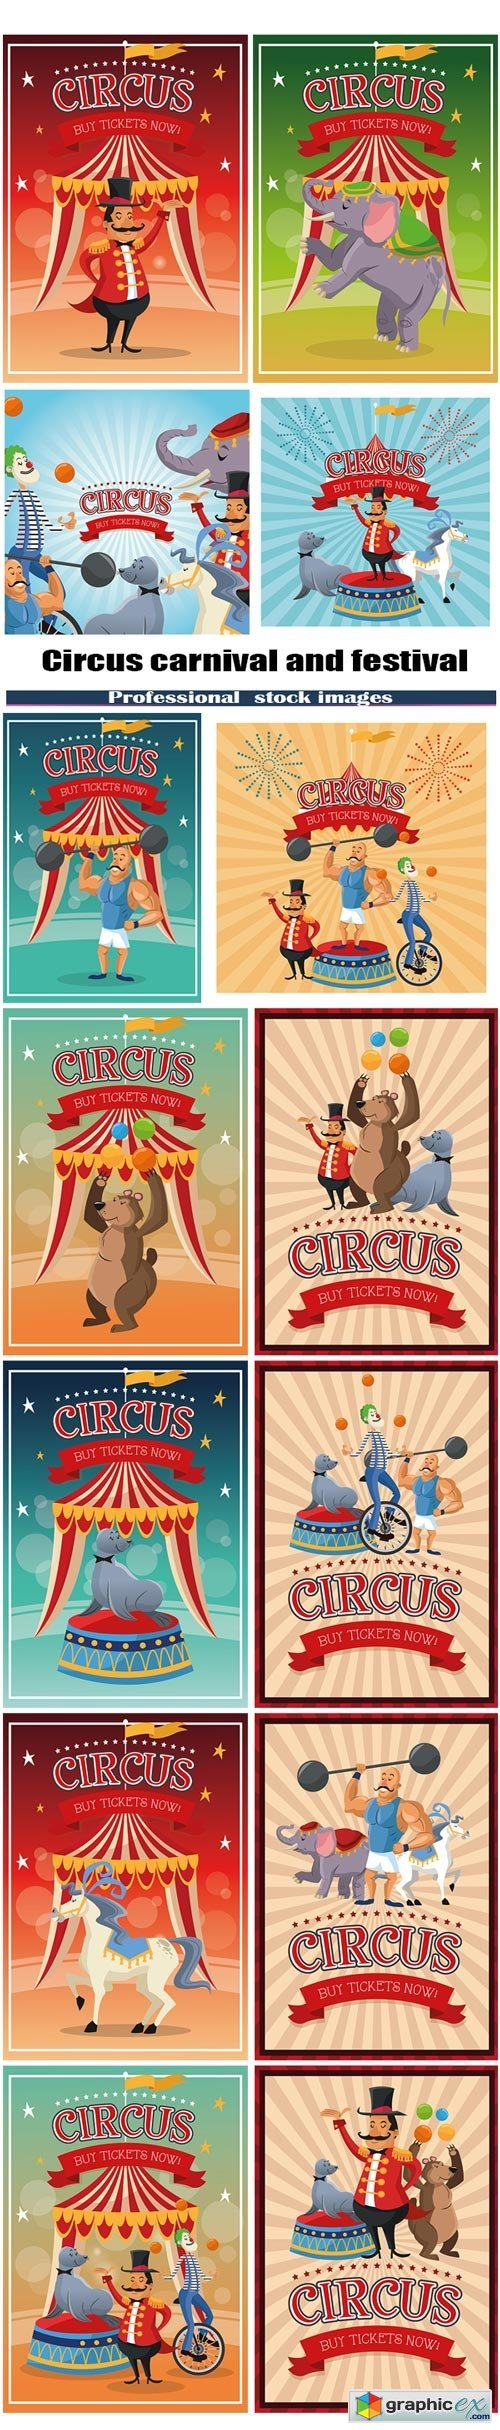 Circus carnival and festival